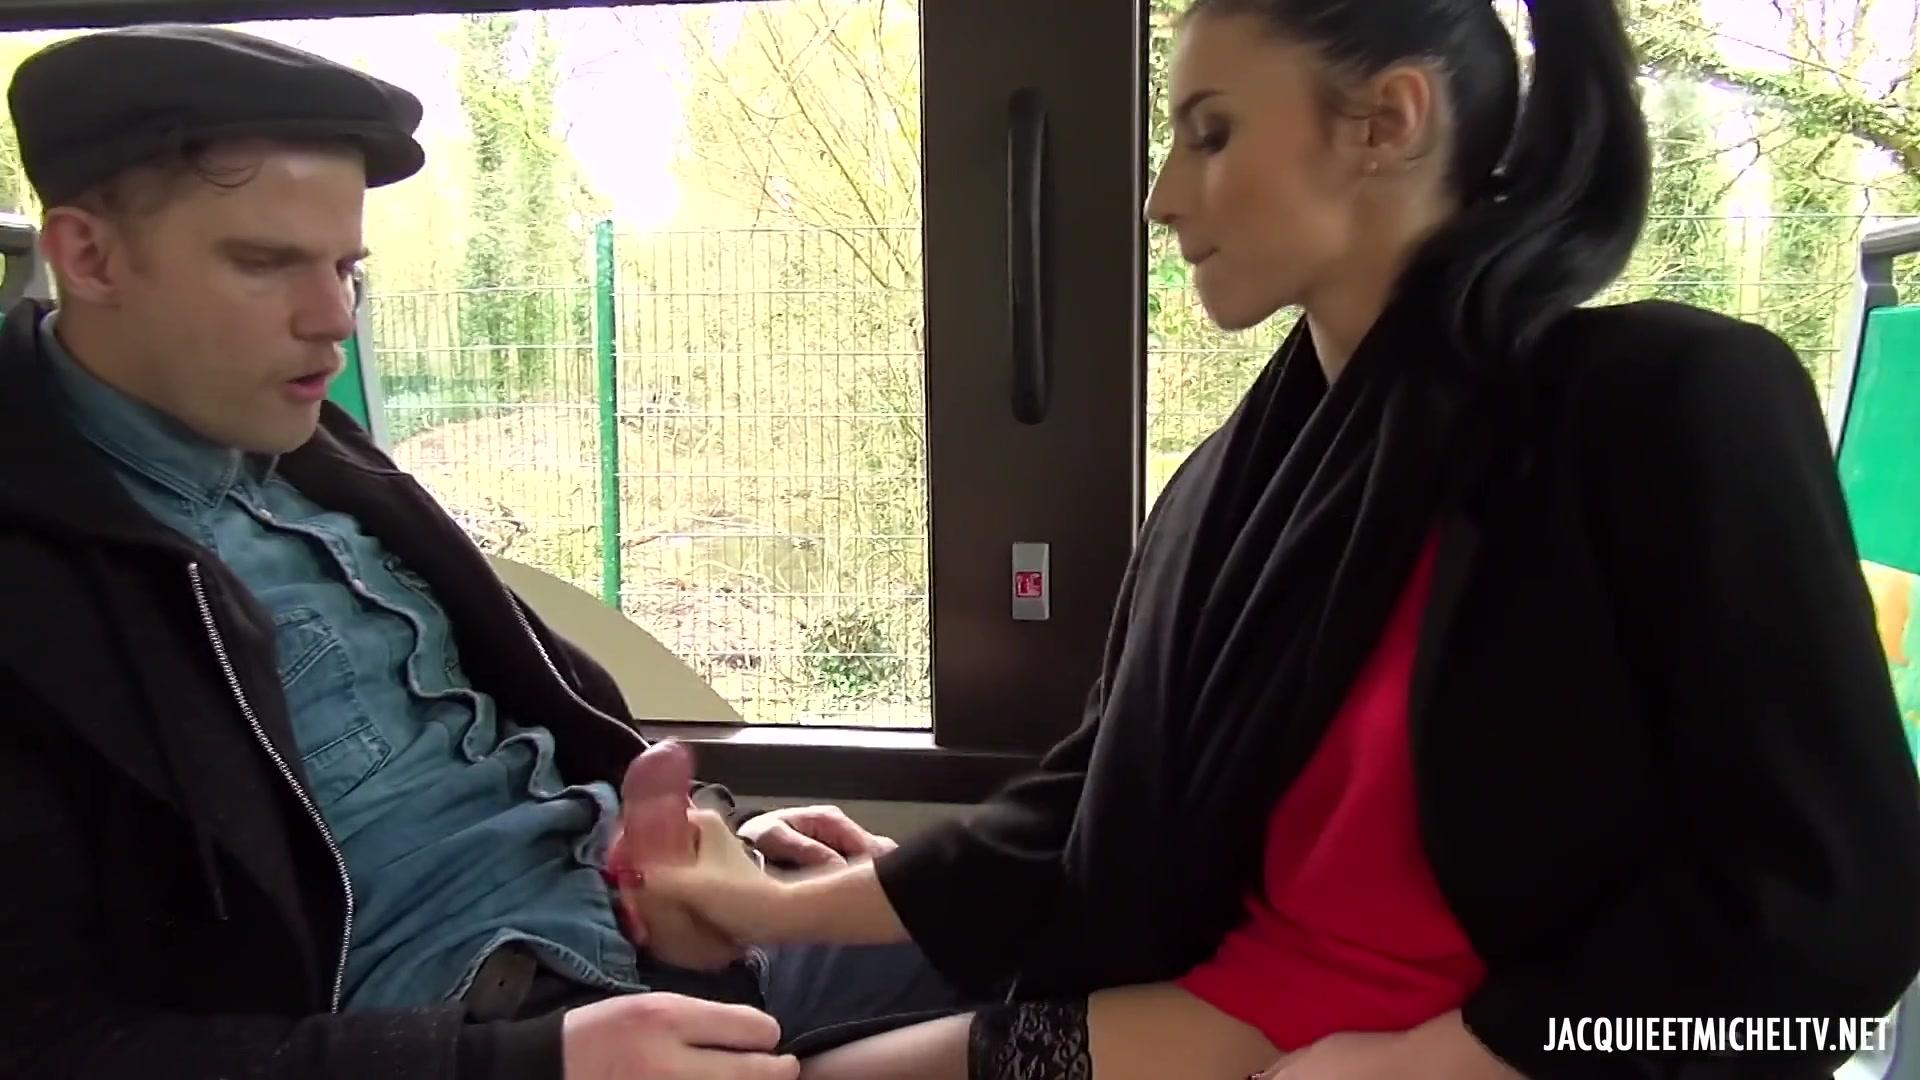 Jacquie Et Michel TV – Nelly Takes The Bus Of Vice FRENCH